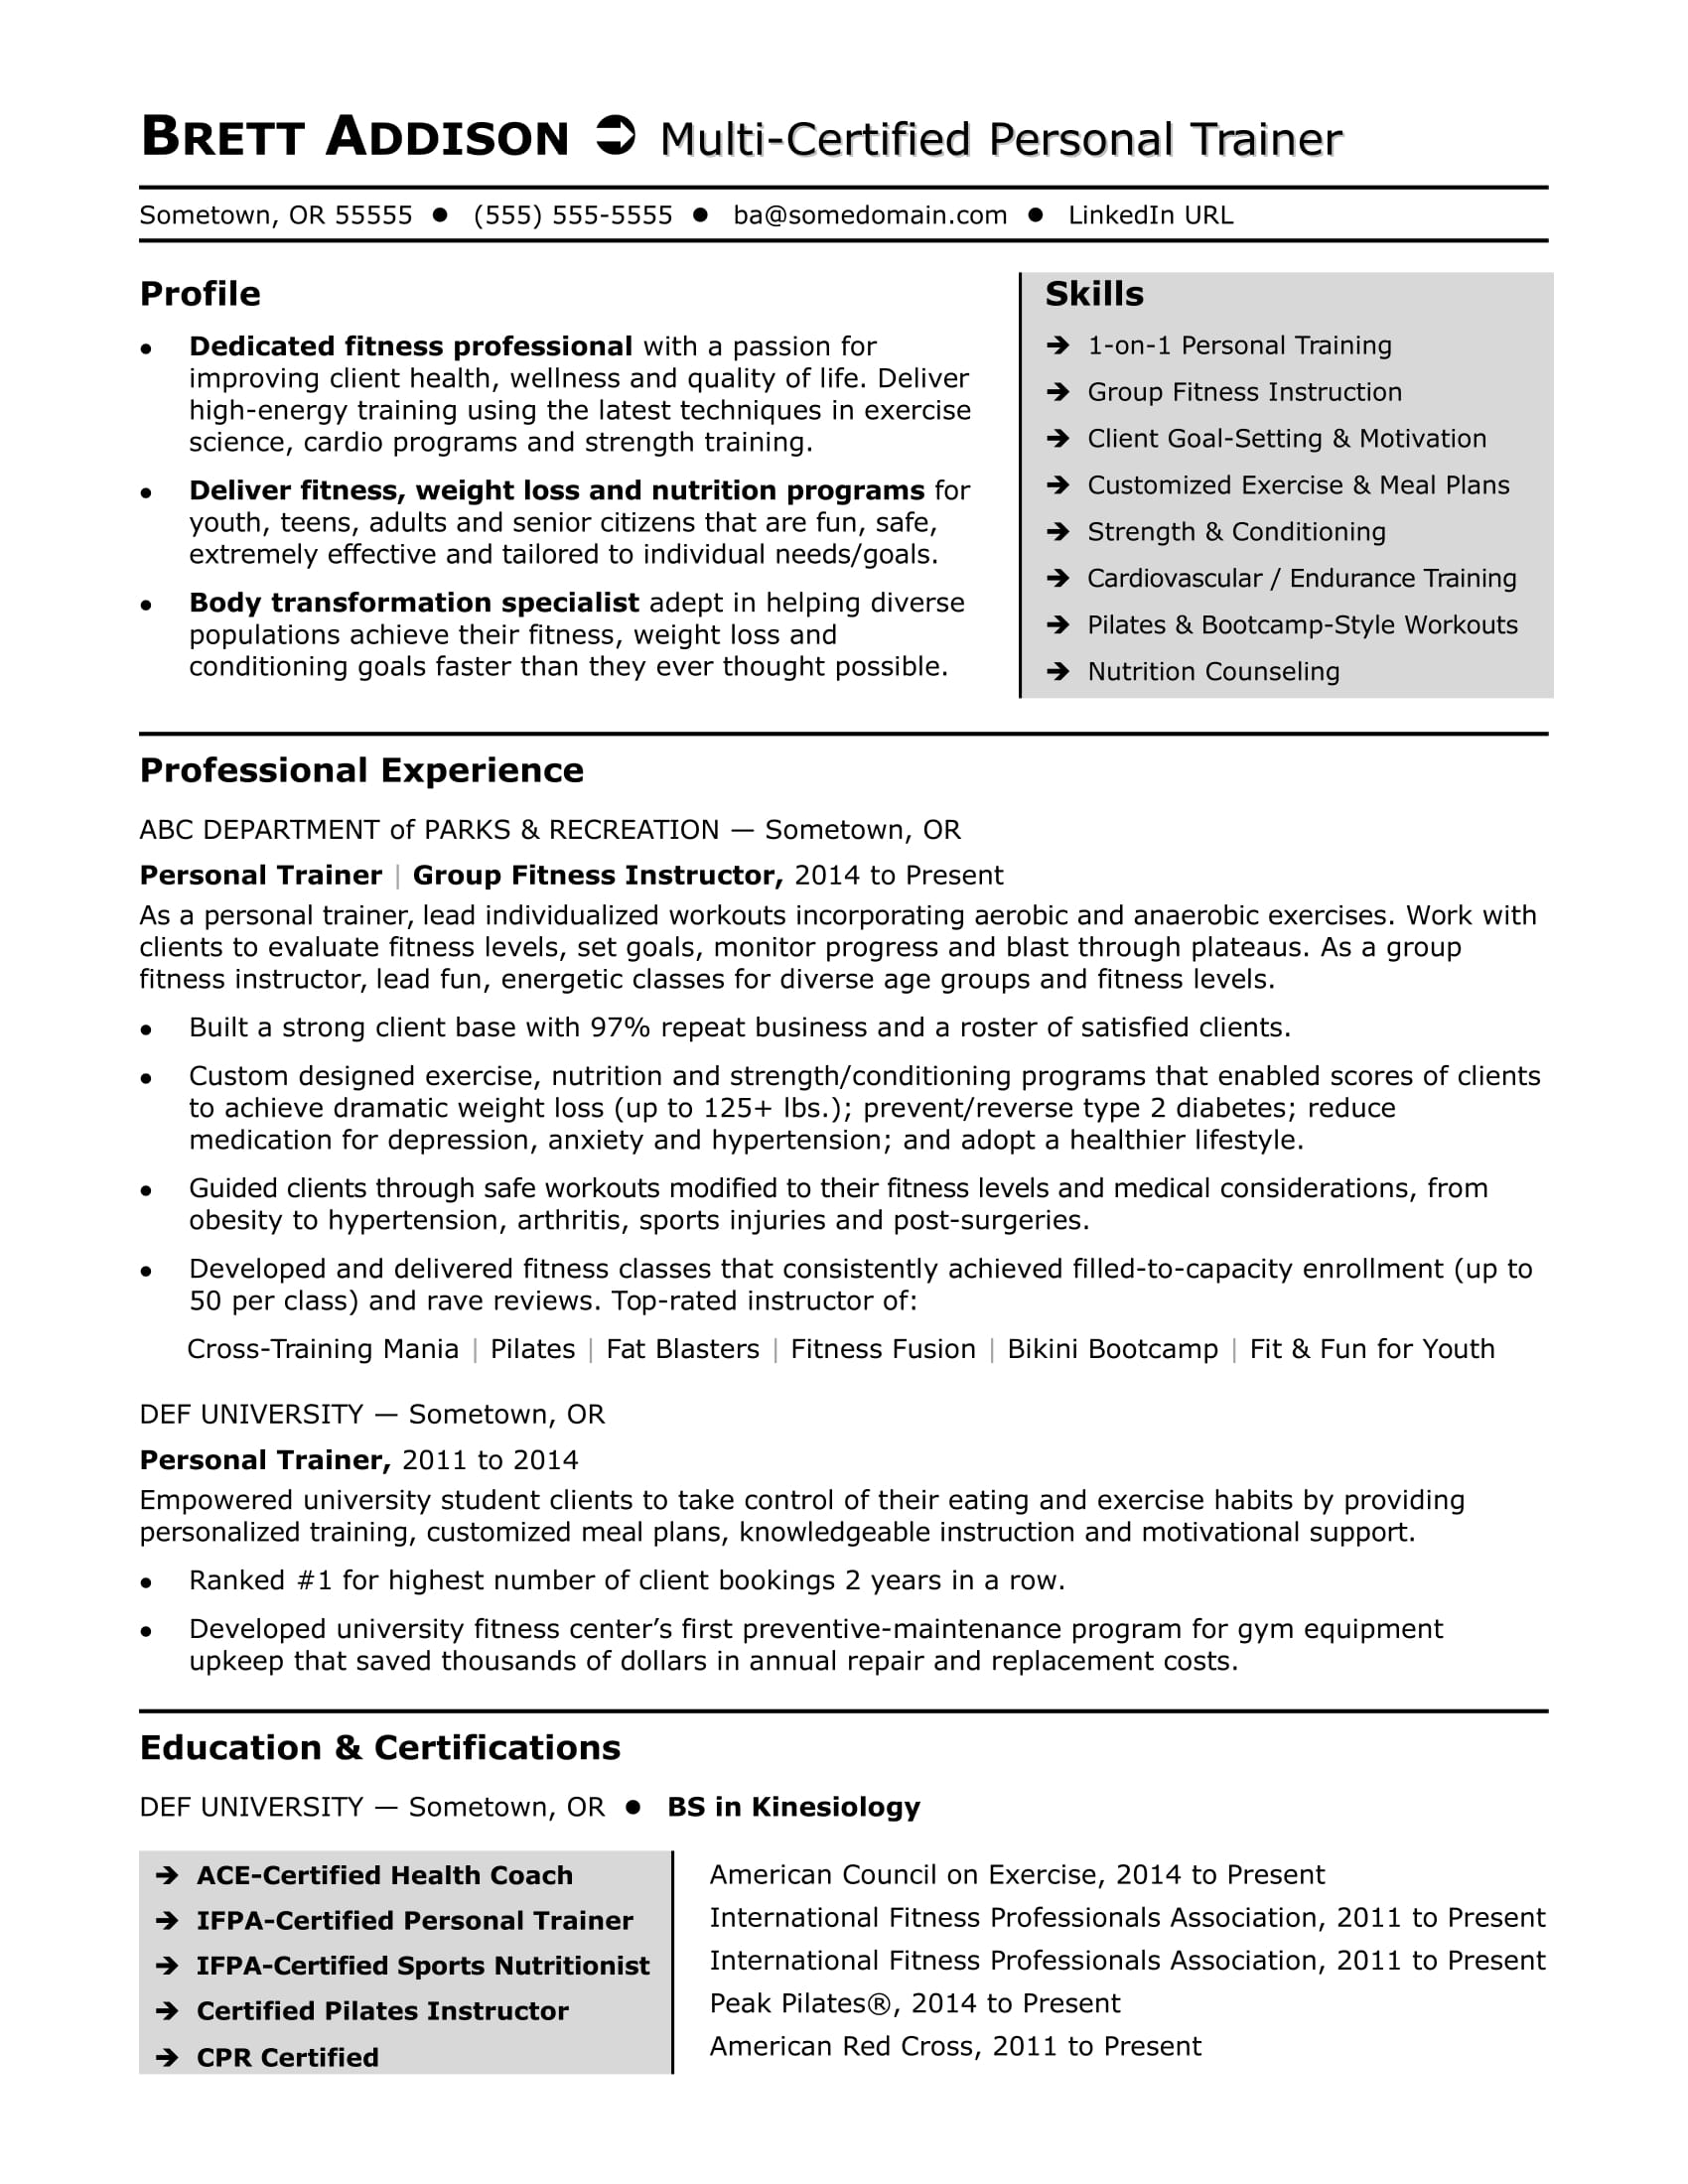 personal trainer resume sample monster unique strengths for board passer teachers group Resume Unique Strengths For Resume